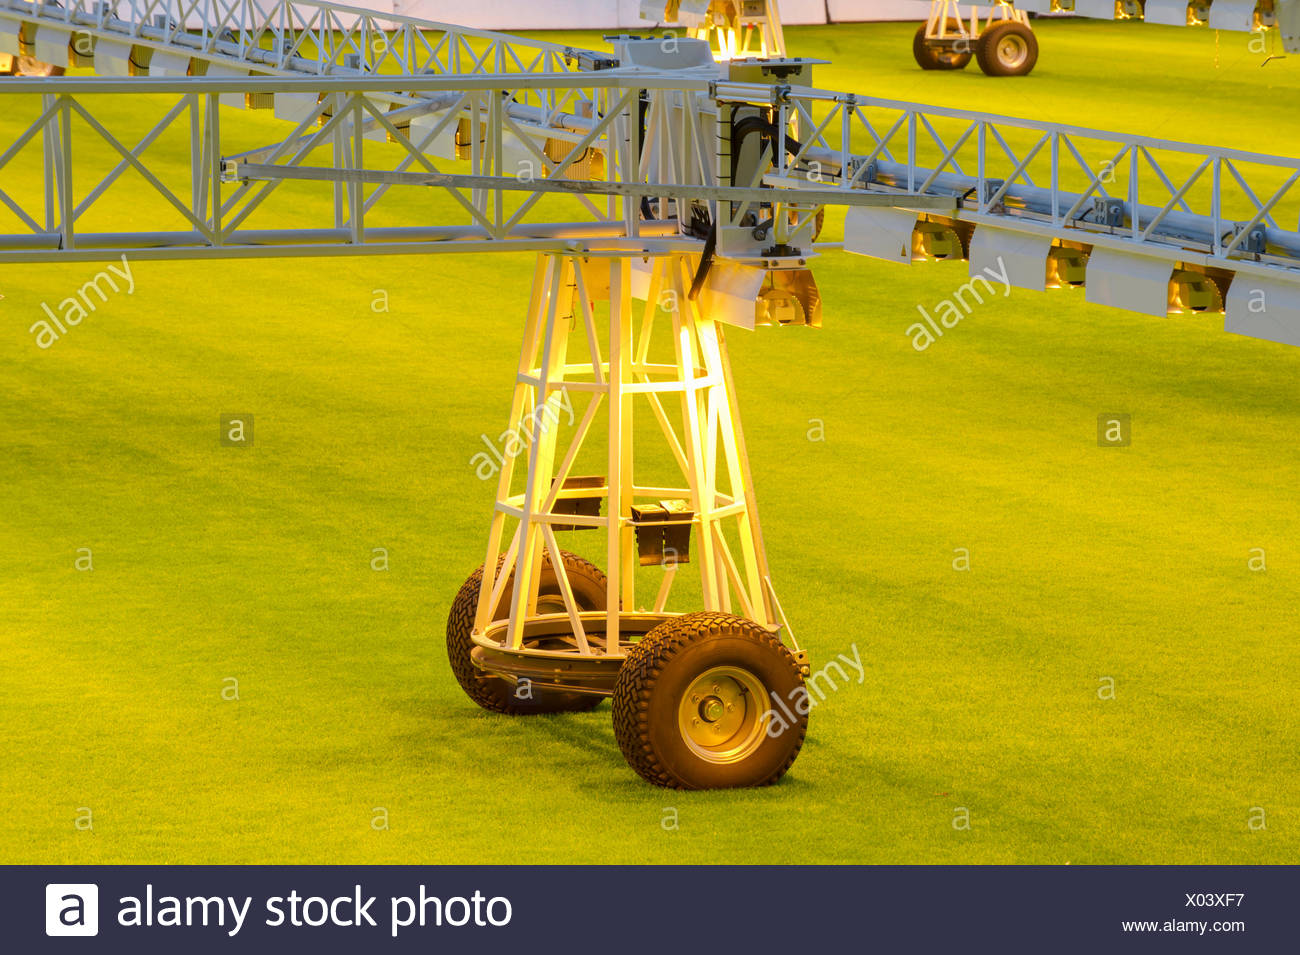 Part of a lawn lighting system to improve the grass quality, Westfalenstadion, football stadium, Dortmund - Stock Image